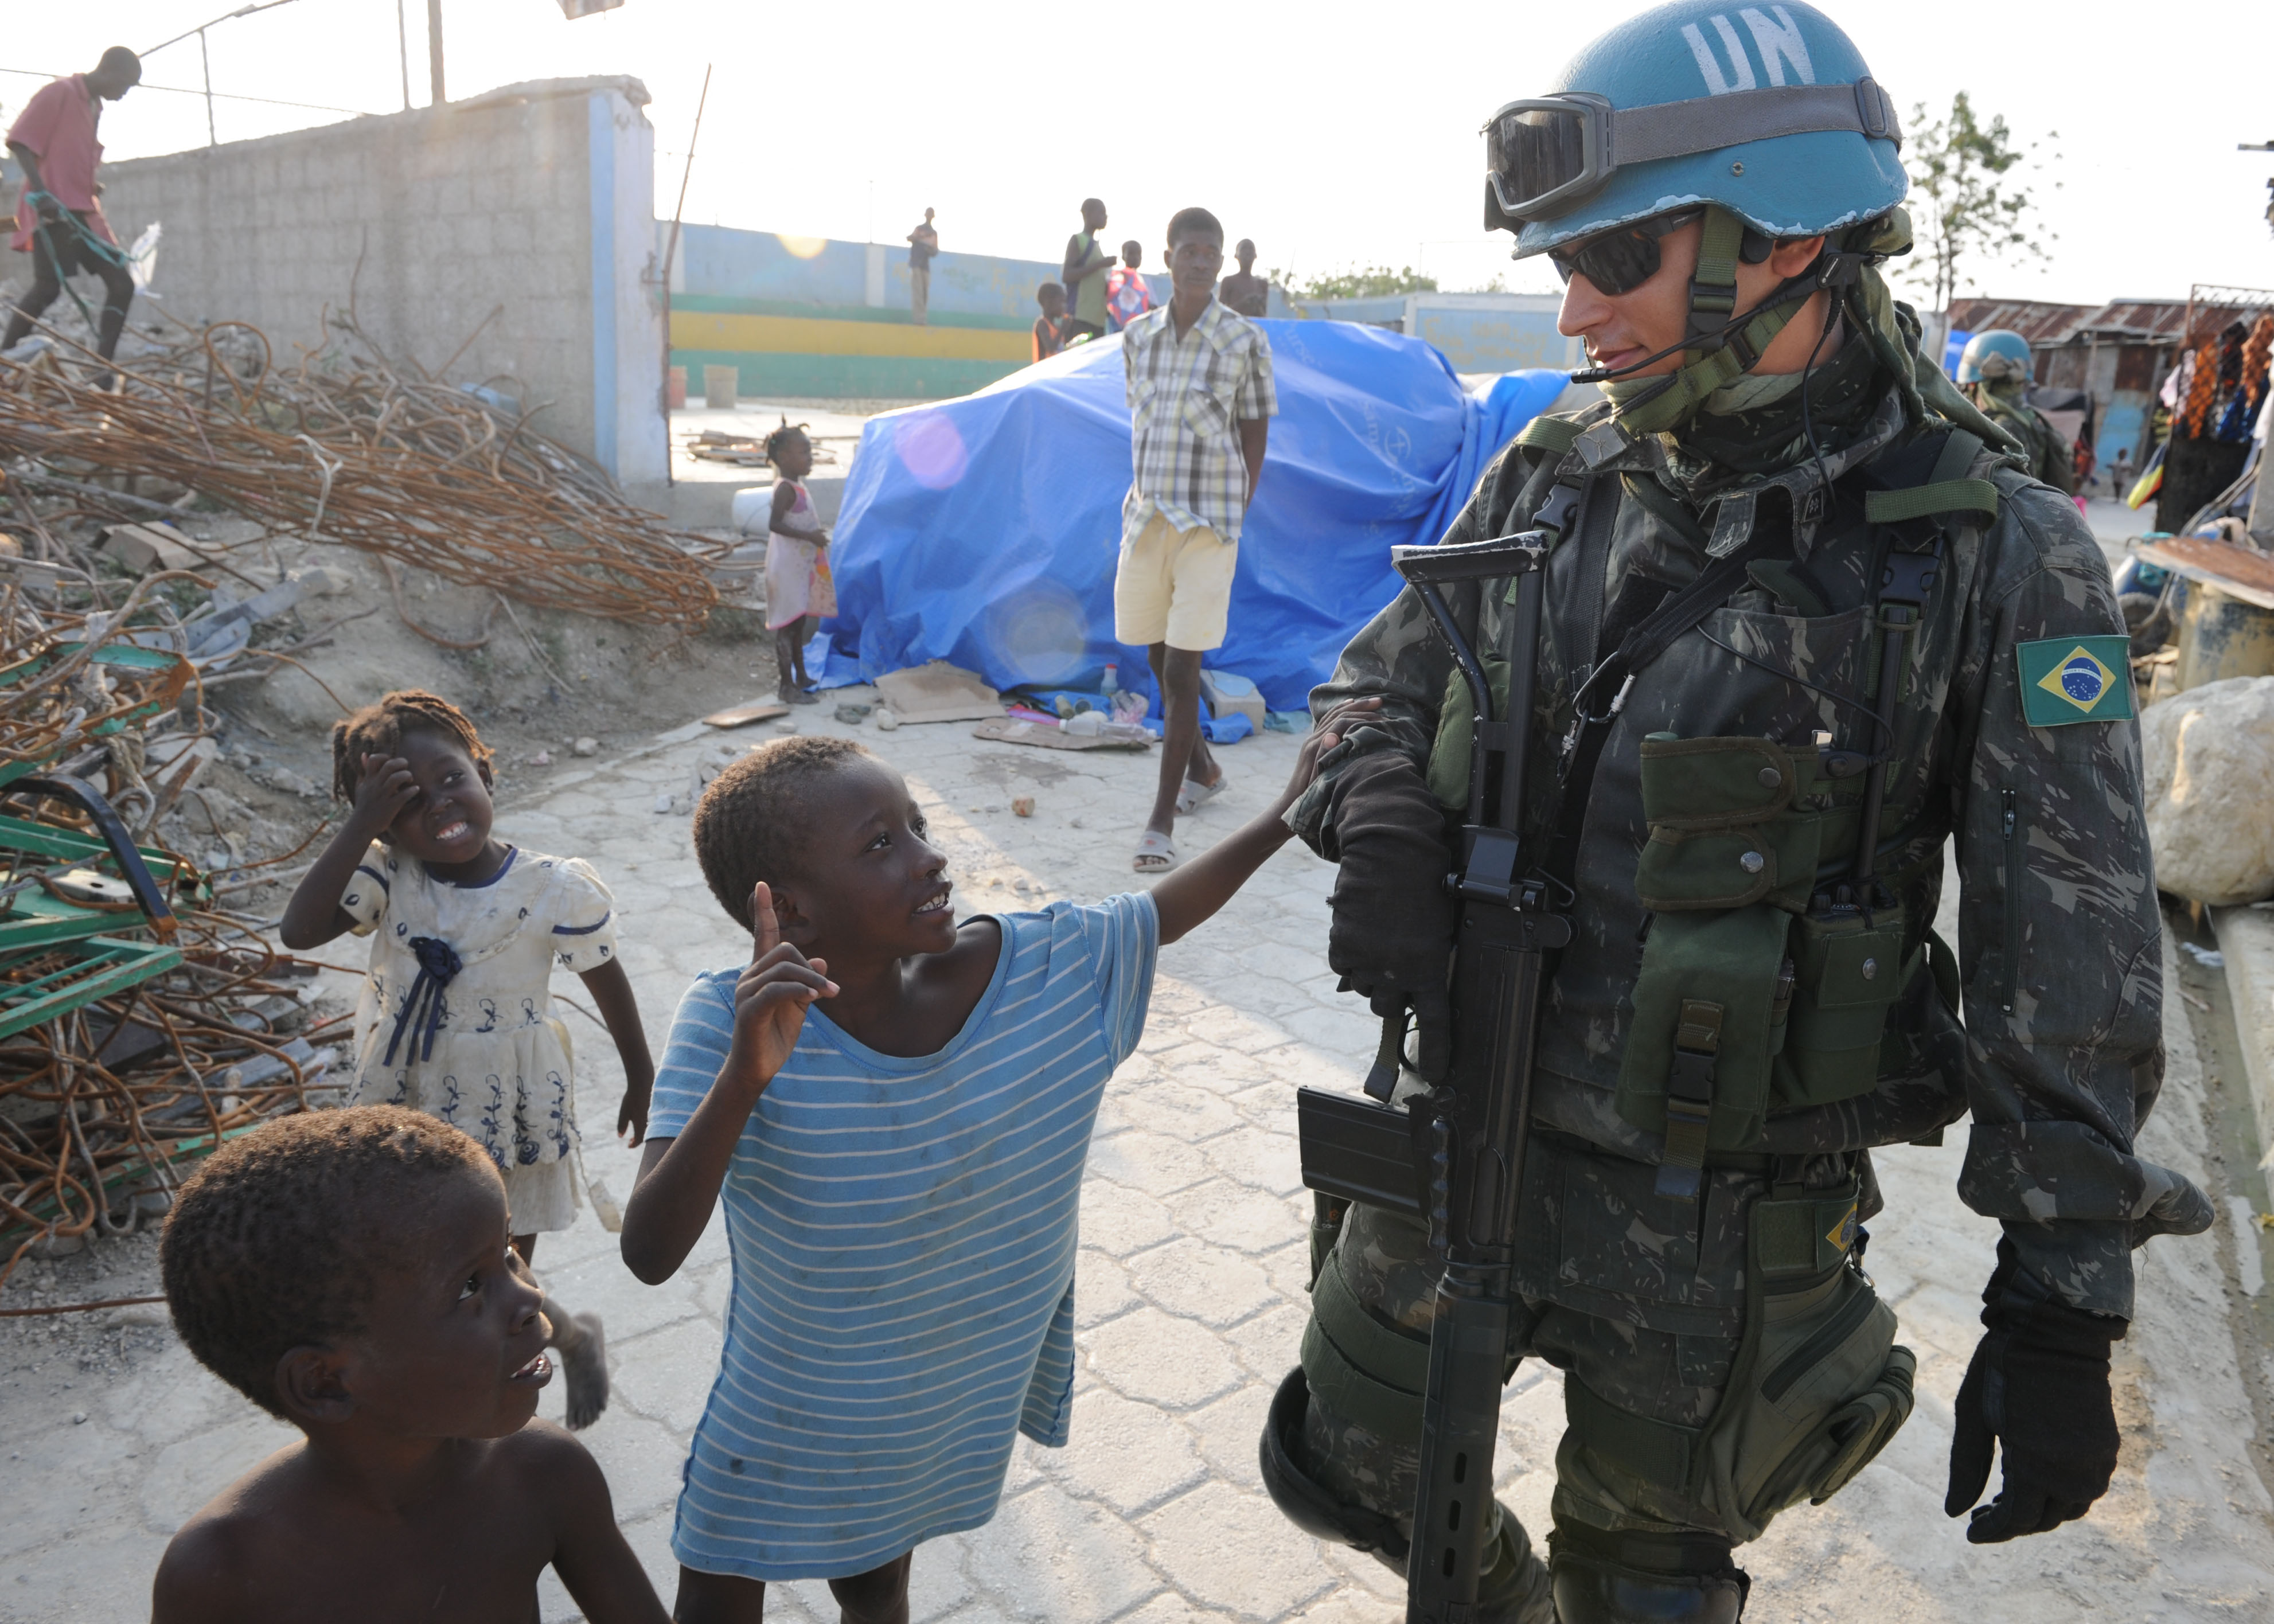 Brazilian peacekeeper in Haiti